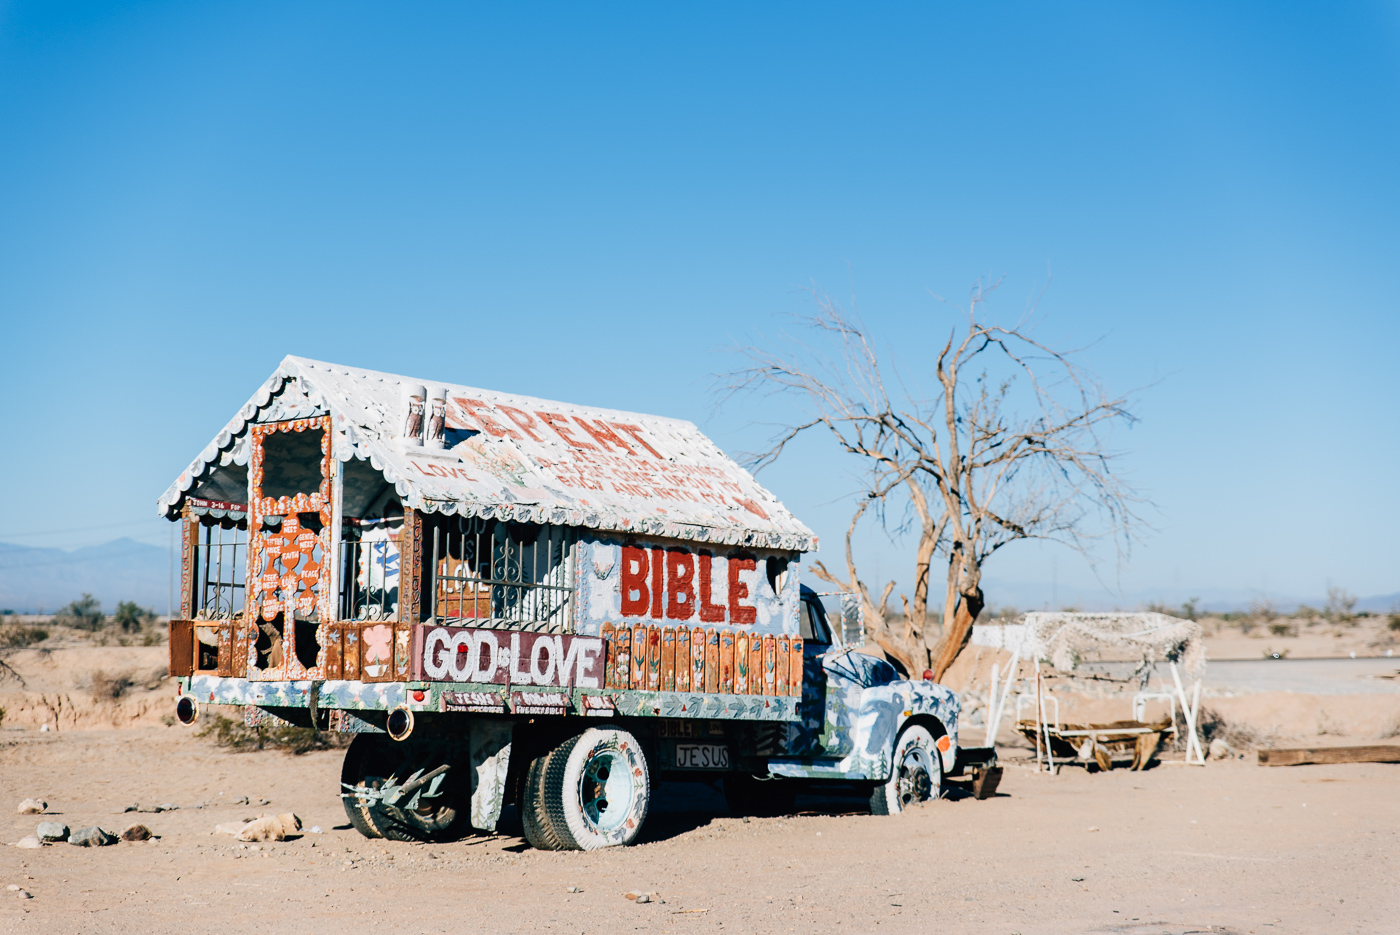 salvation mountain california arizona slab city salton sea vsco nikon america yall pawlowski americayall truck